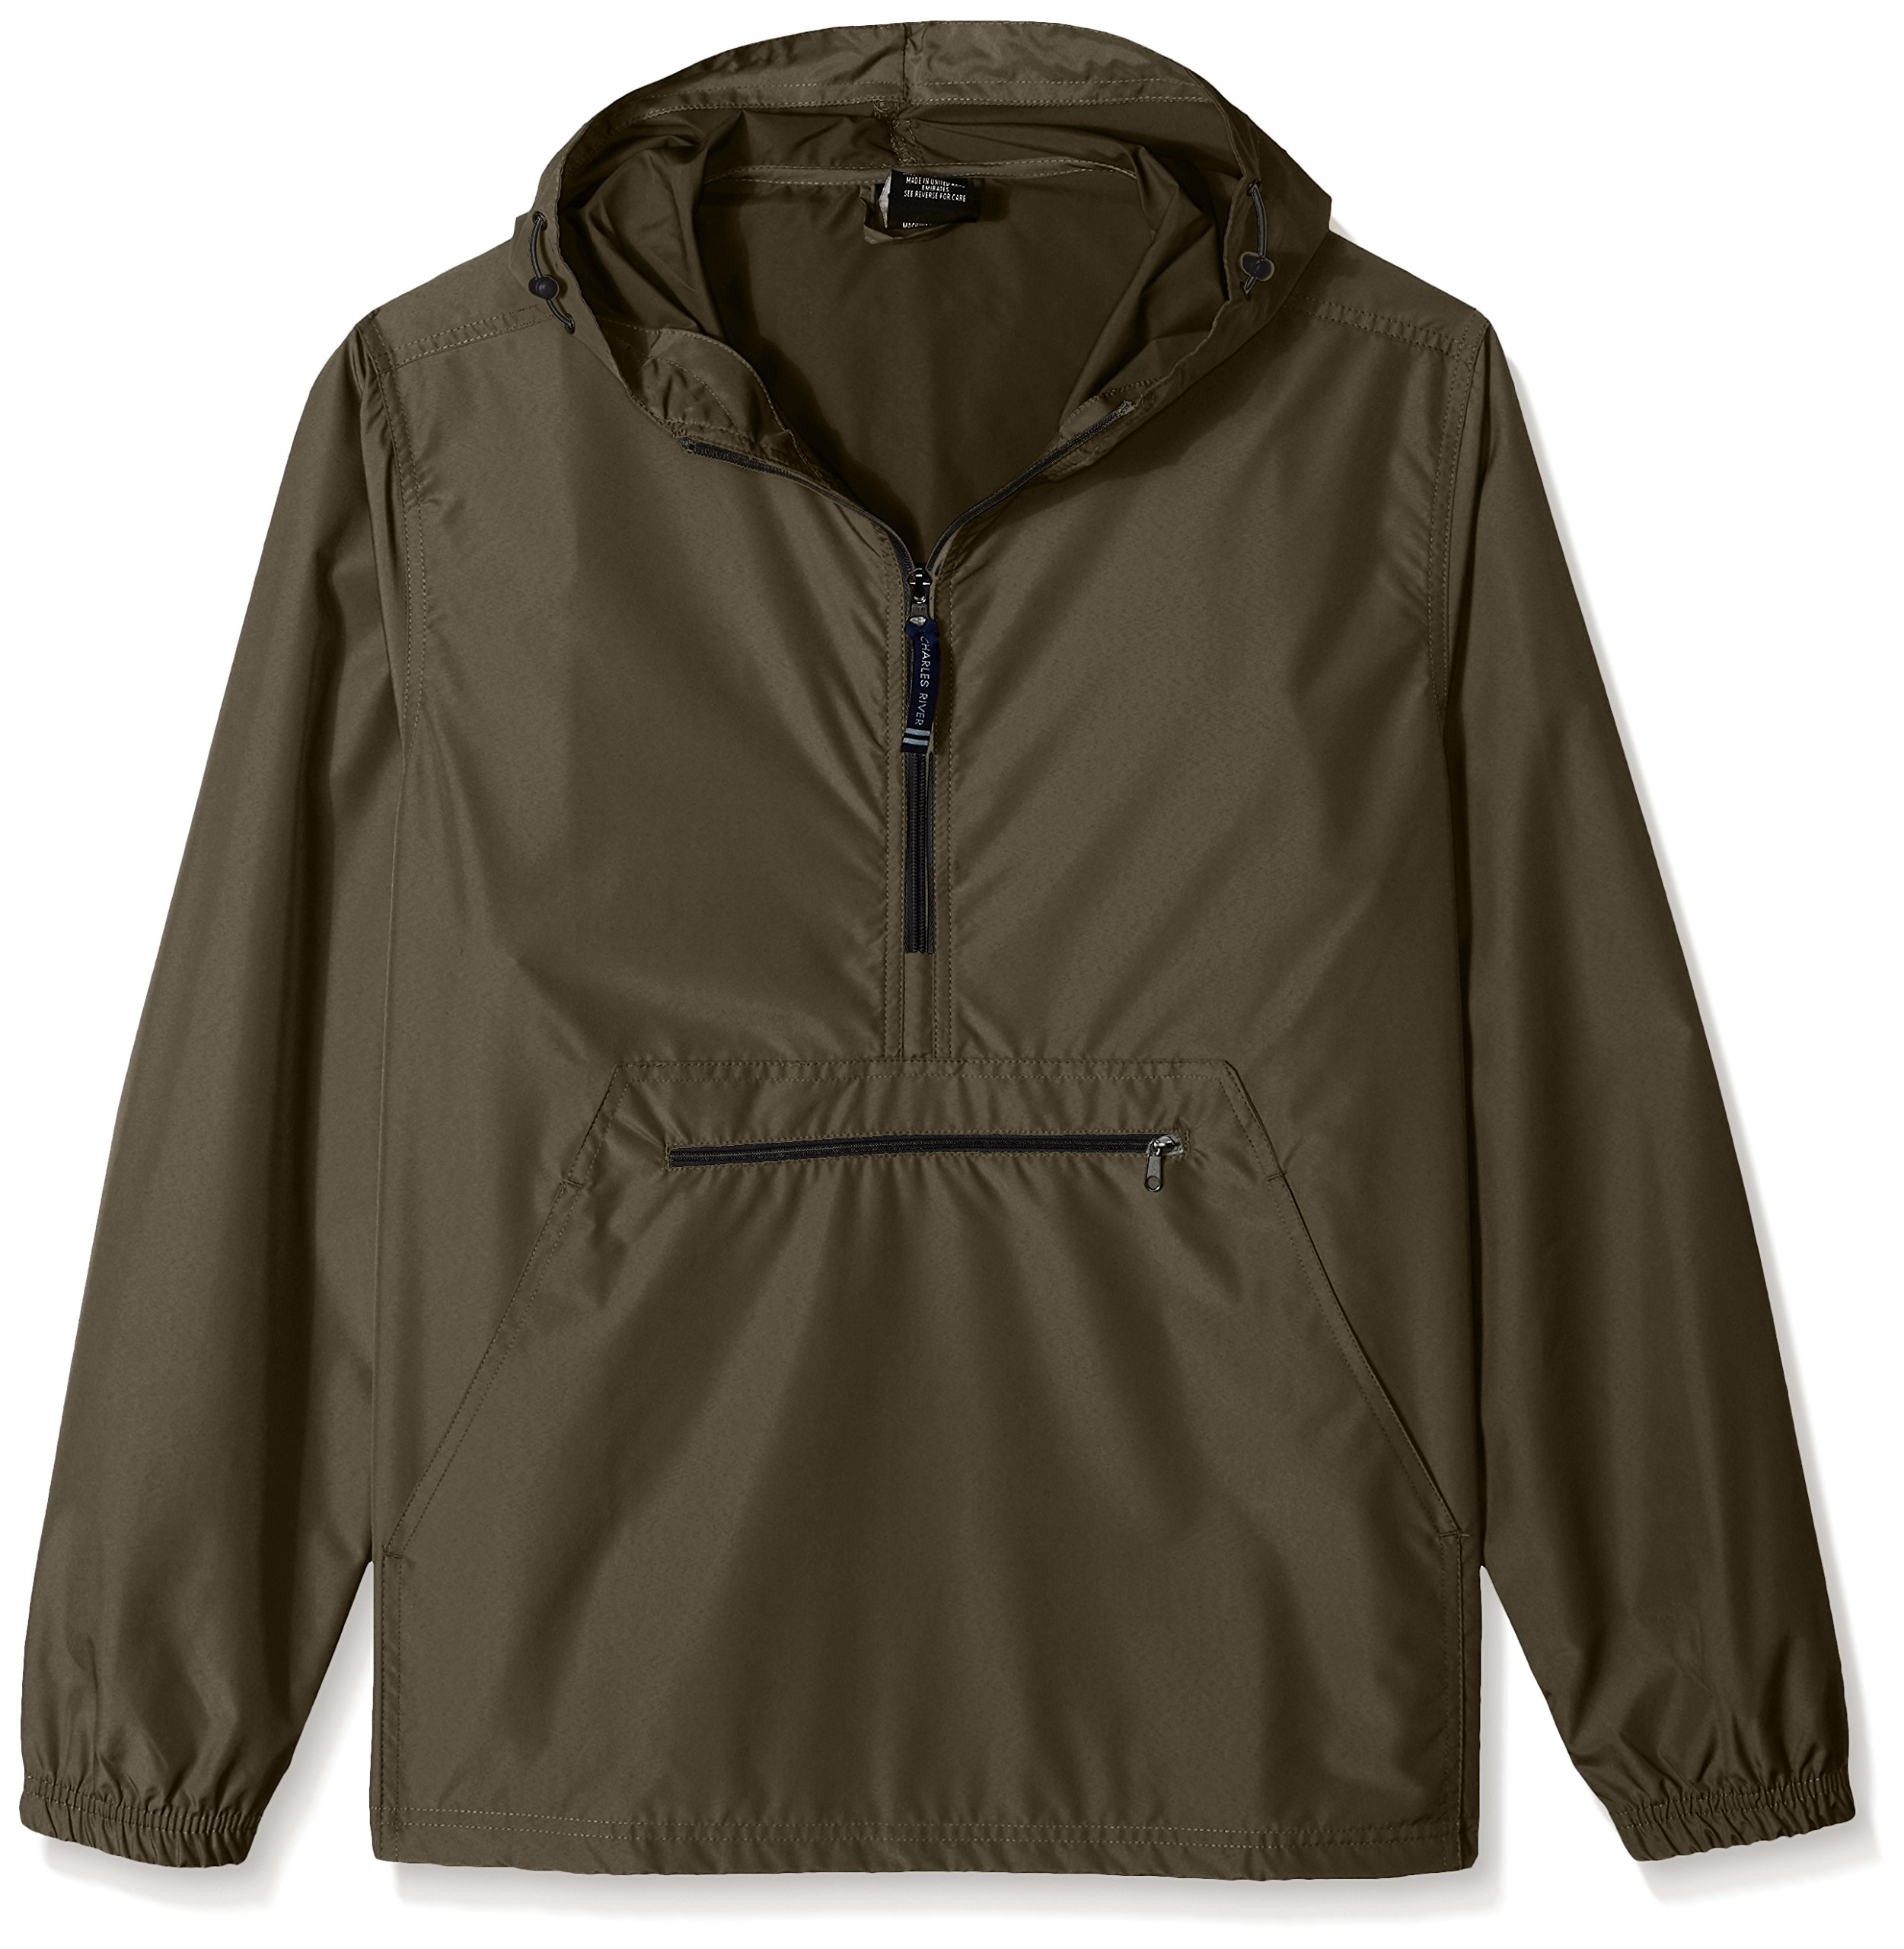 Charles River Apparel Pack-N-Go Wind & Water-Resistant Pullover (Reg/Ext Sizes), Olive, 3XL